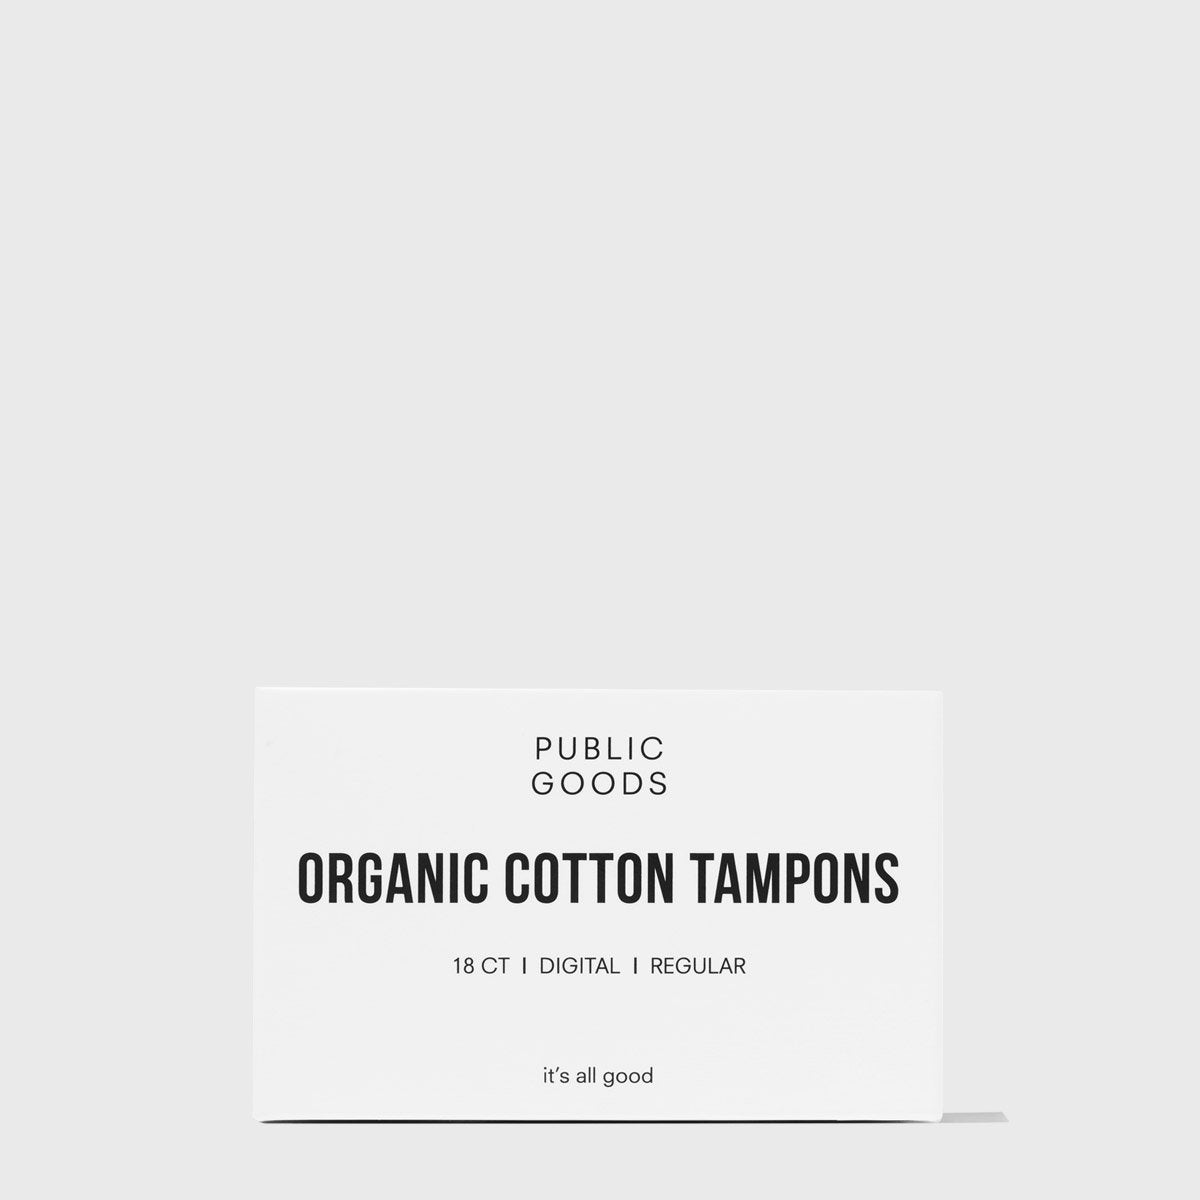 Public Goods Personal Care Cotton Tampons without Applicator - Regular 18 ct (Case of 48)